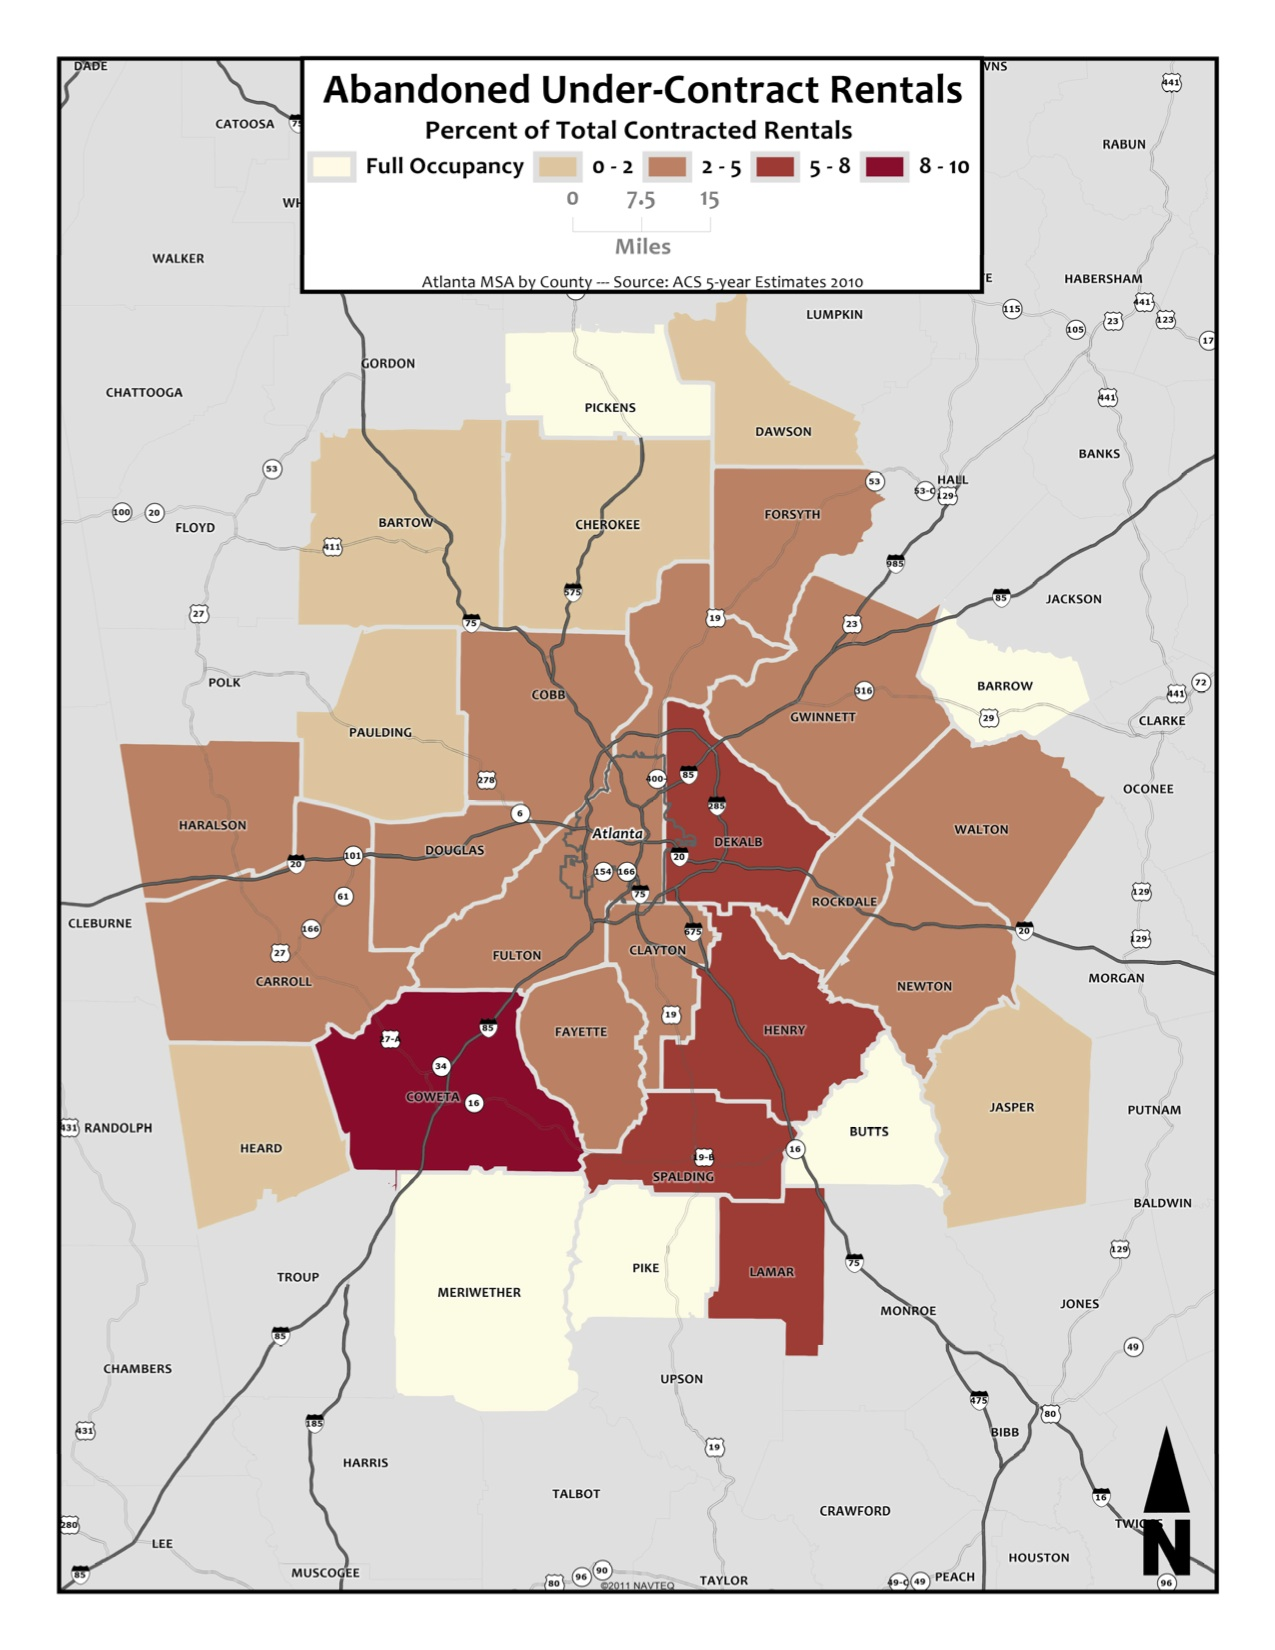 Abandoned Under-Contract Rentals – metro counties